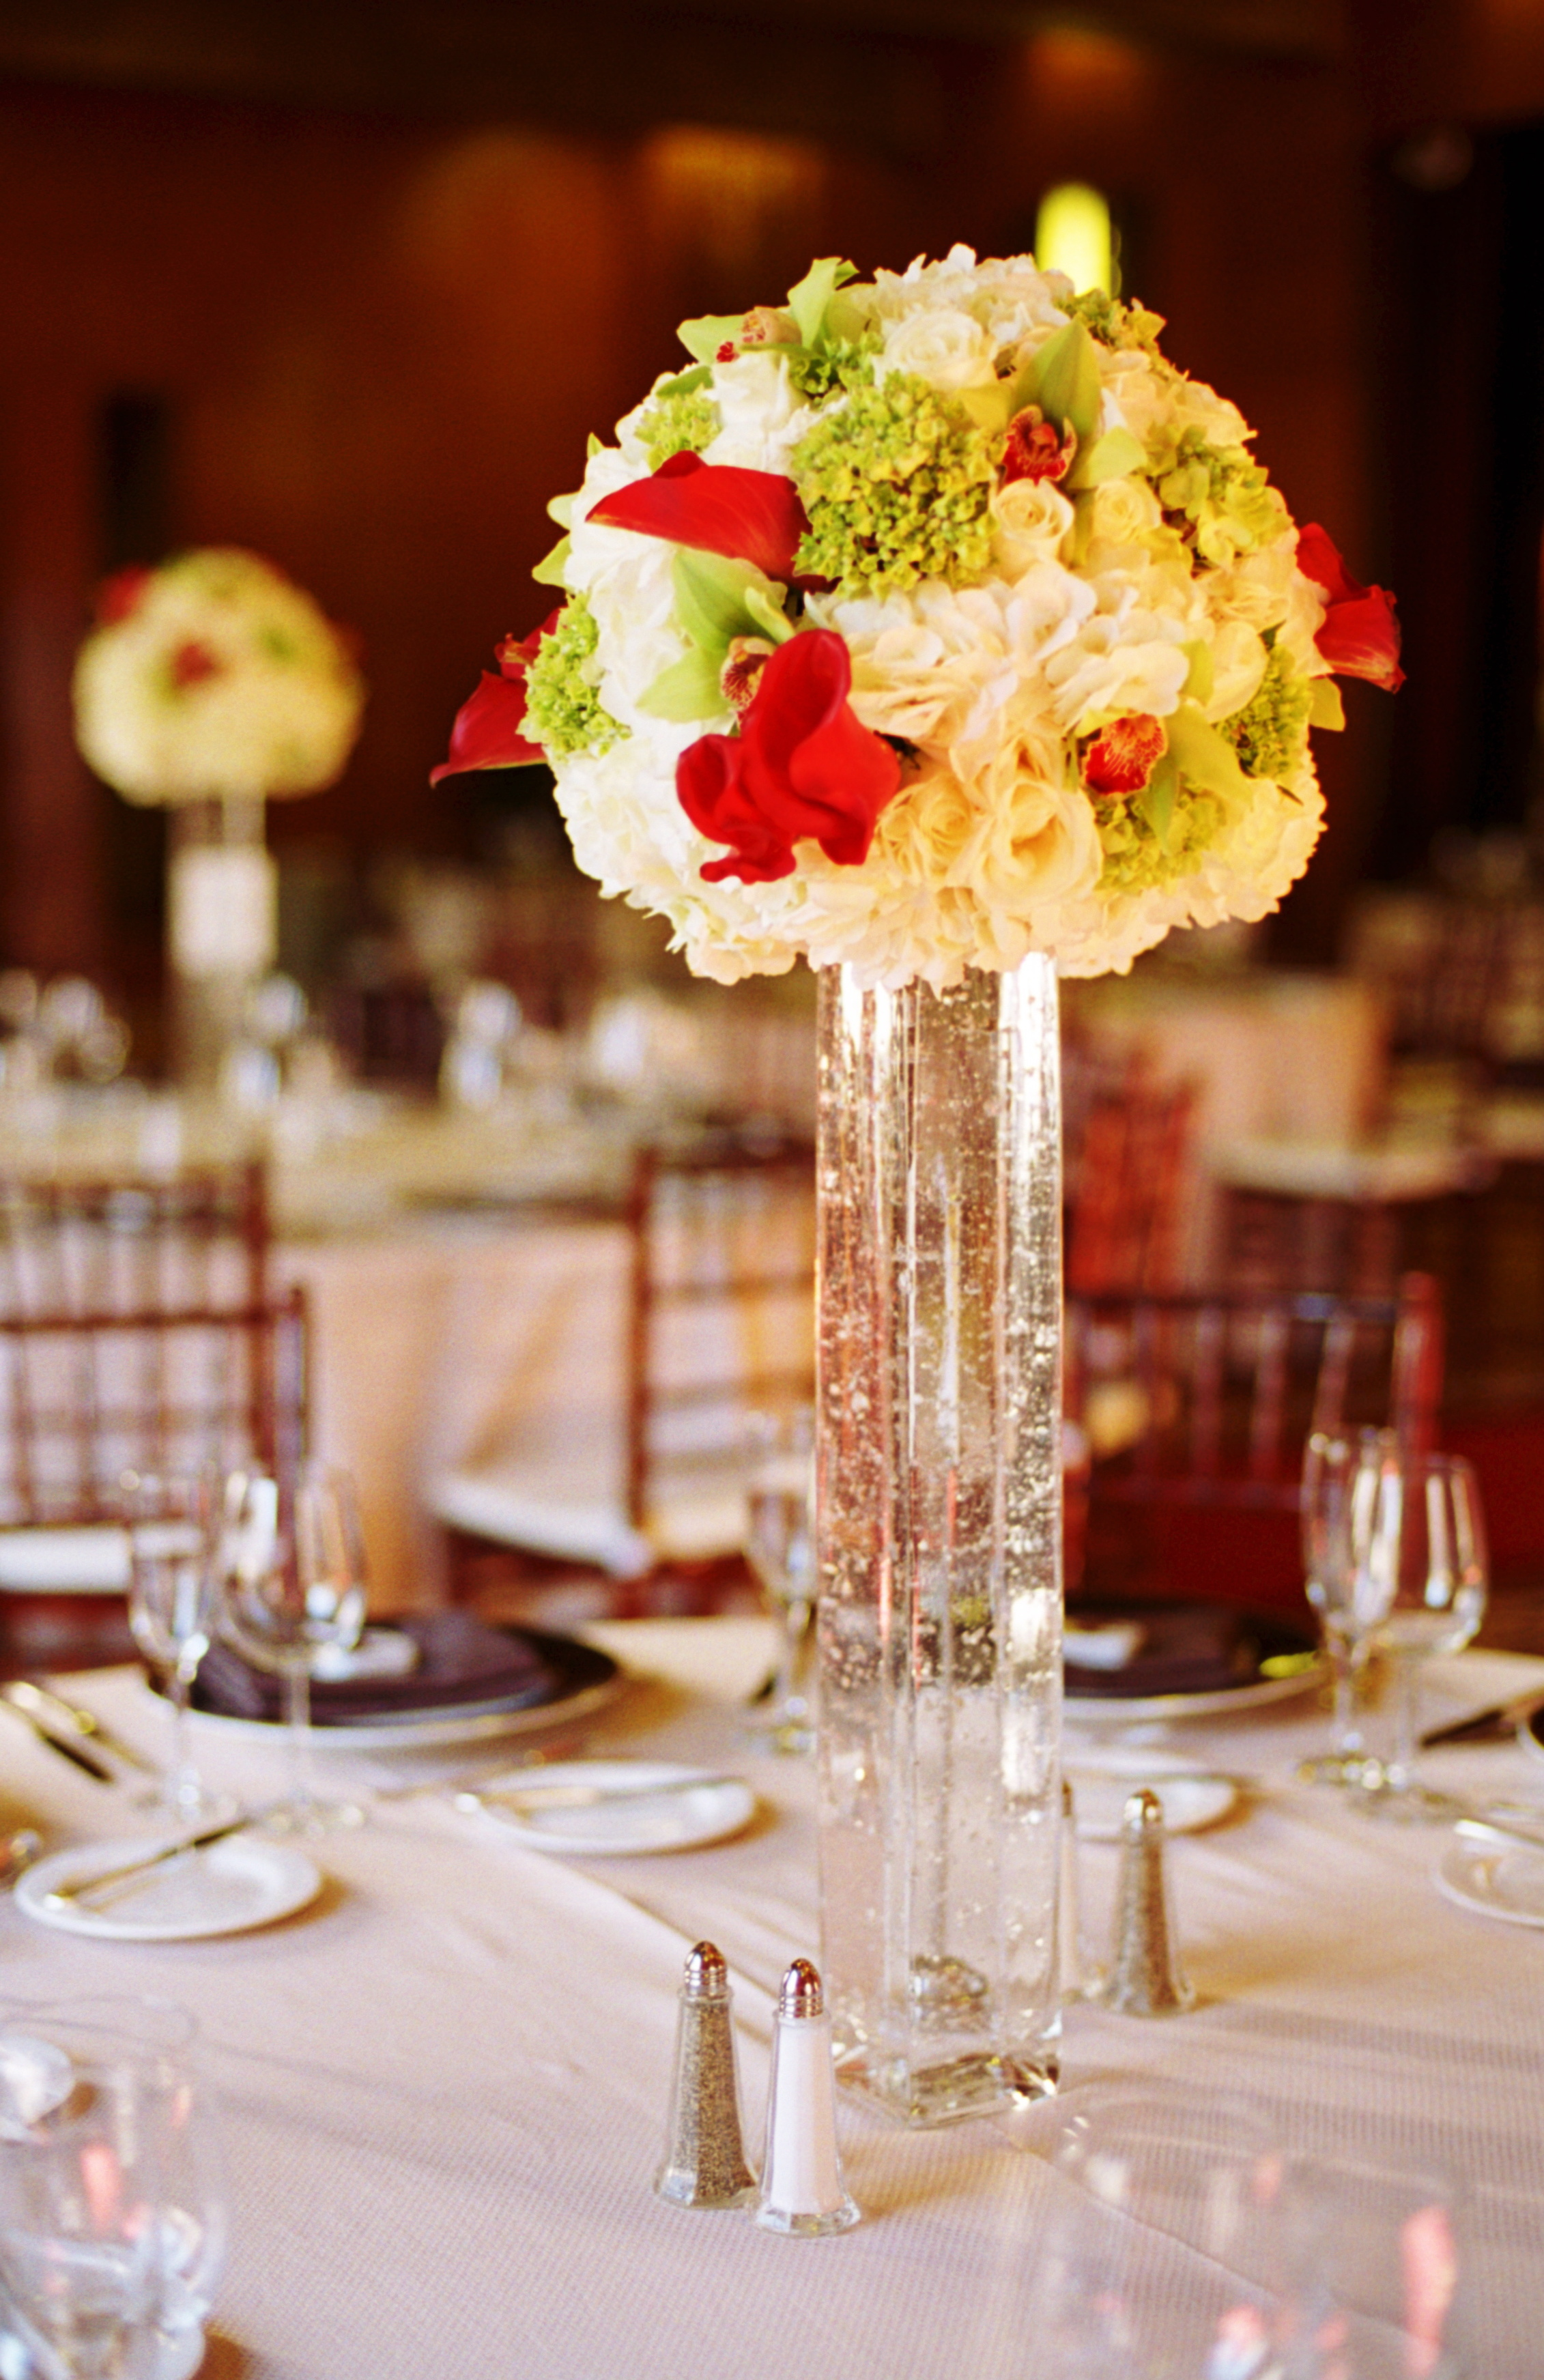 Reception, Flowers & Decor, Decor, Centerpieces, Flowers, City, Centerpiece, Wedding, Romantic, San, Francisco, Vases